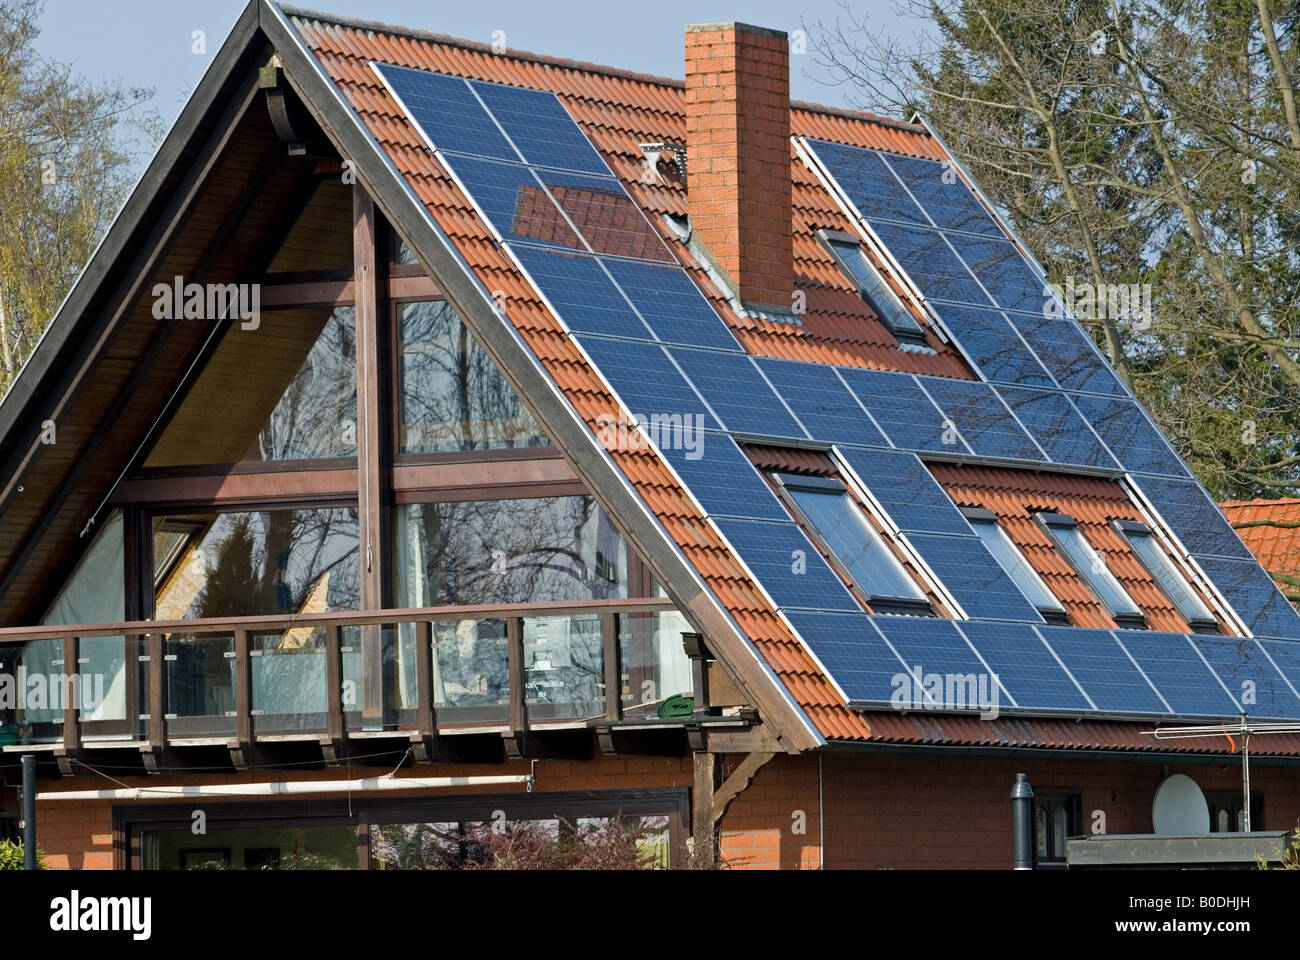 Solar panels on a residential property in Hude am Dummer, Lower Saxony, Germany. Stock Photo